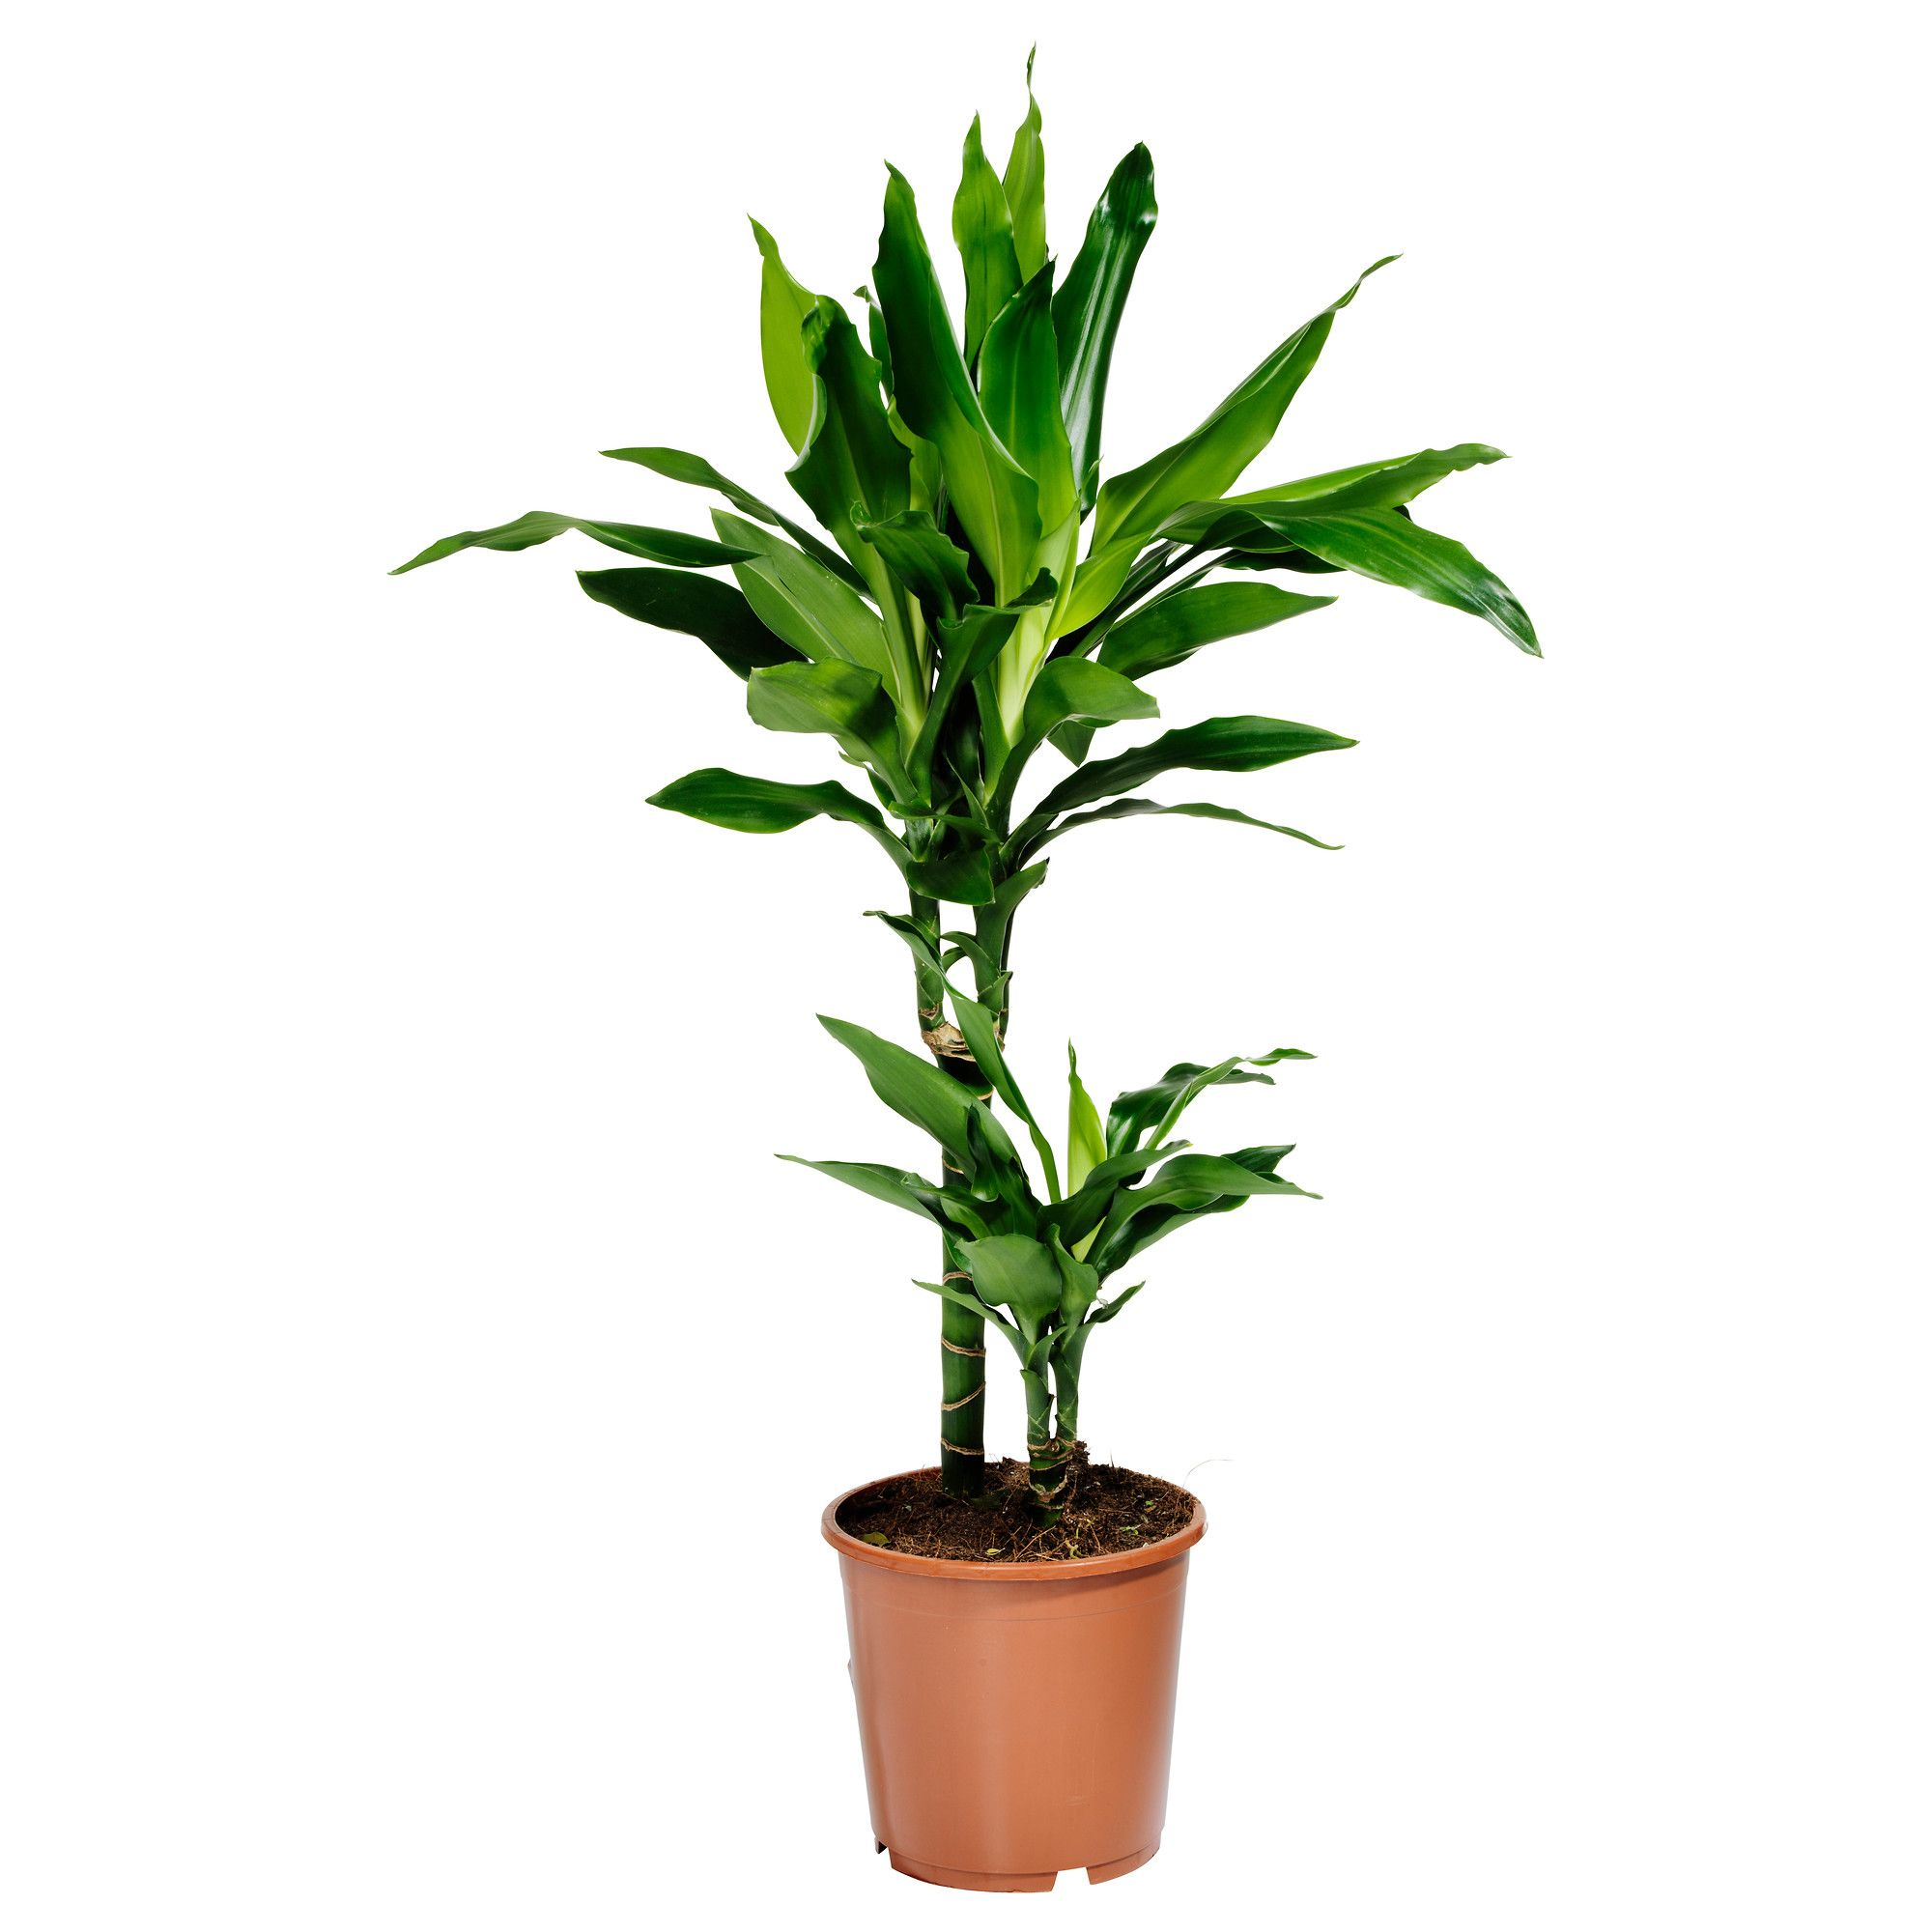 Dracaena janet lind potted plant ikea diy pinterest for Ikea plantes